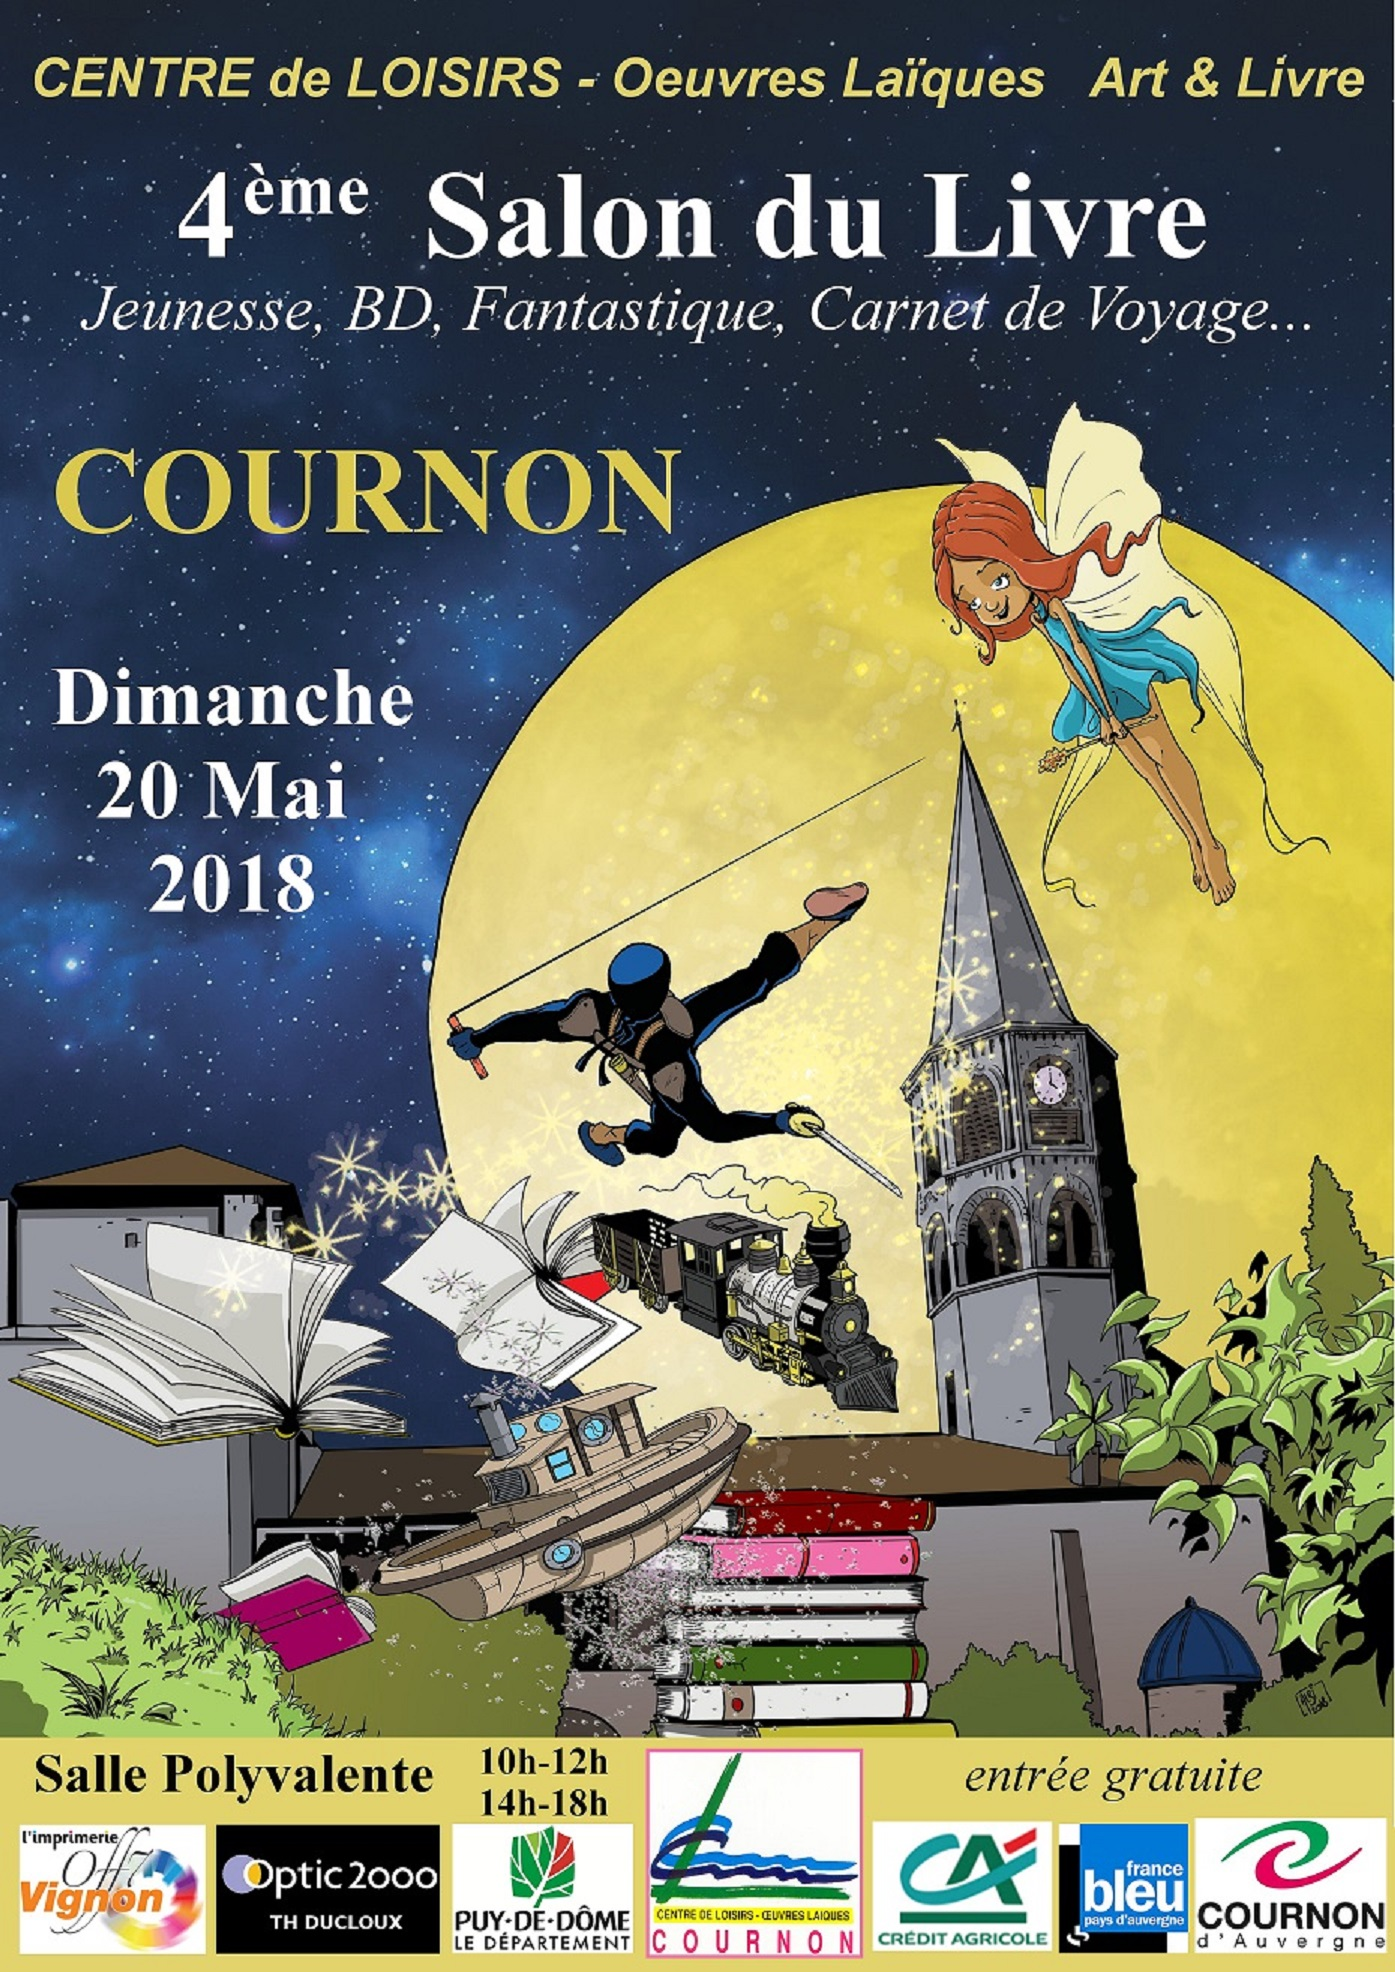 Cournon Book Fair on May 20, 2018